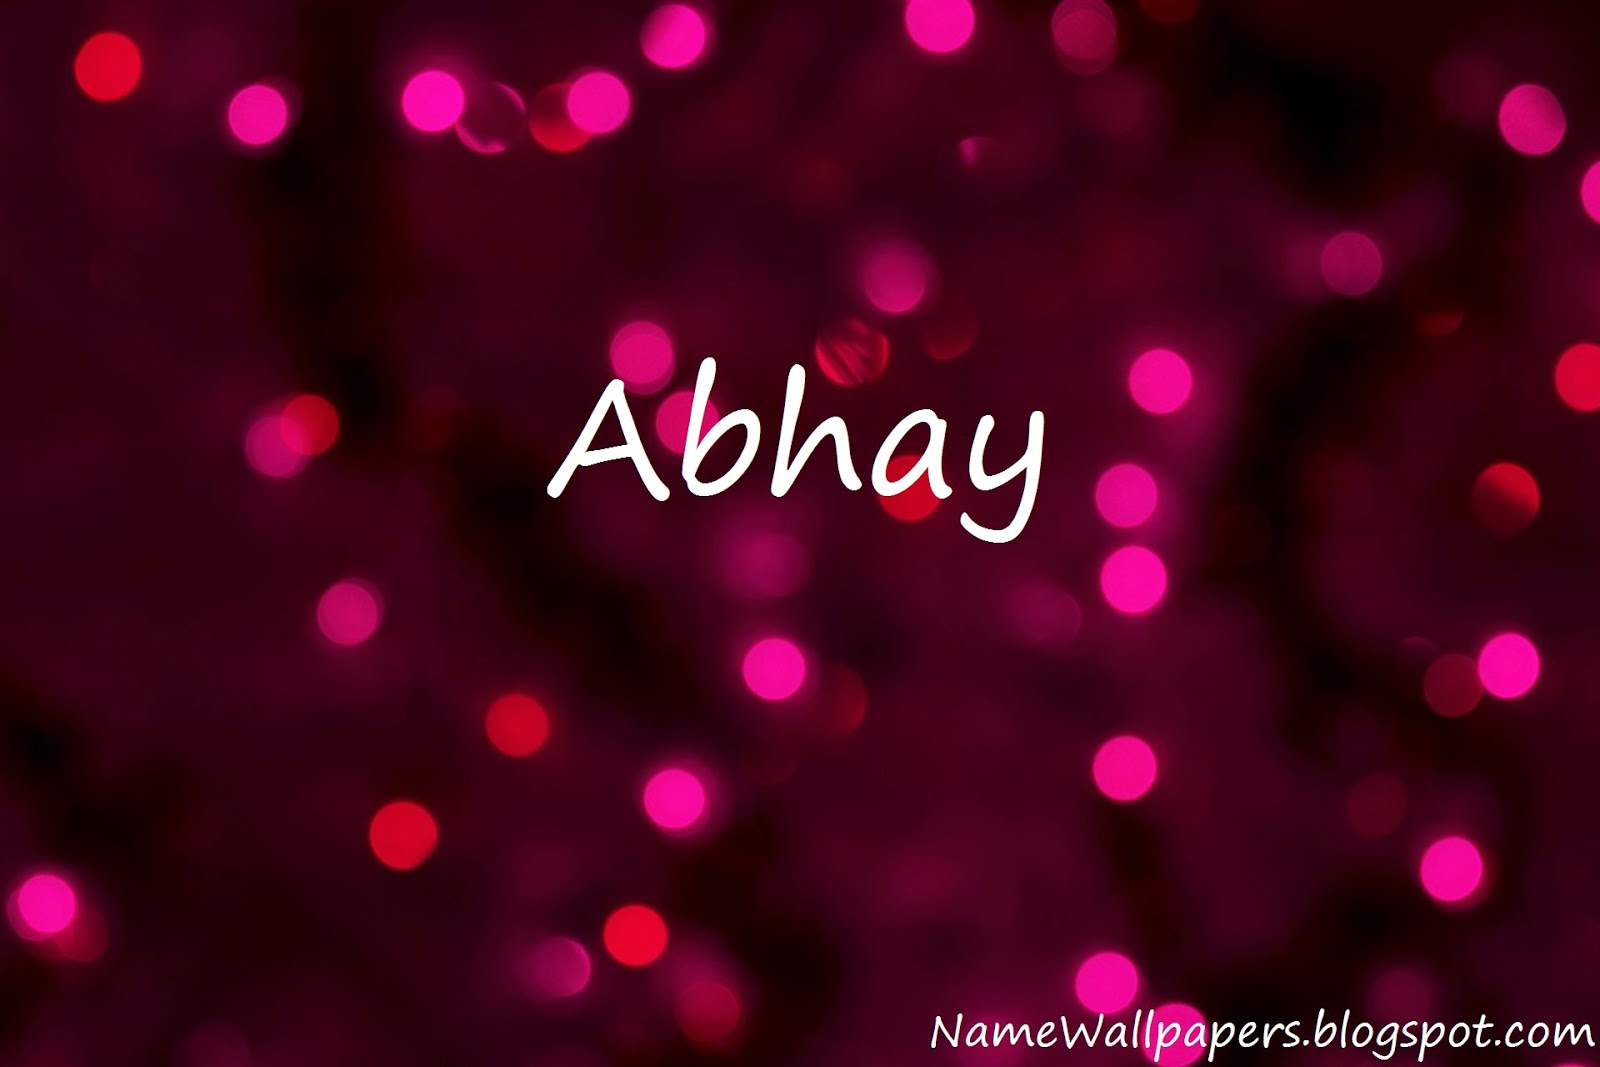 Download Abhay Name Wallpaper Gallery